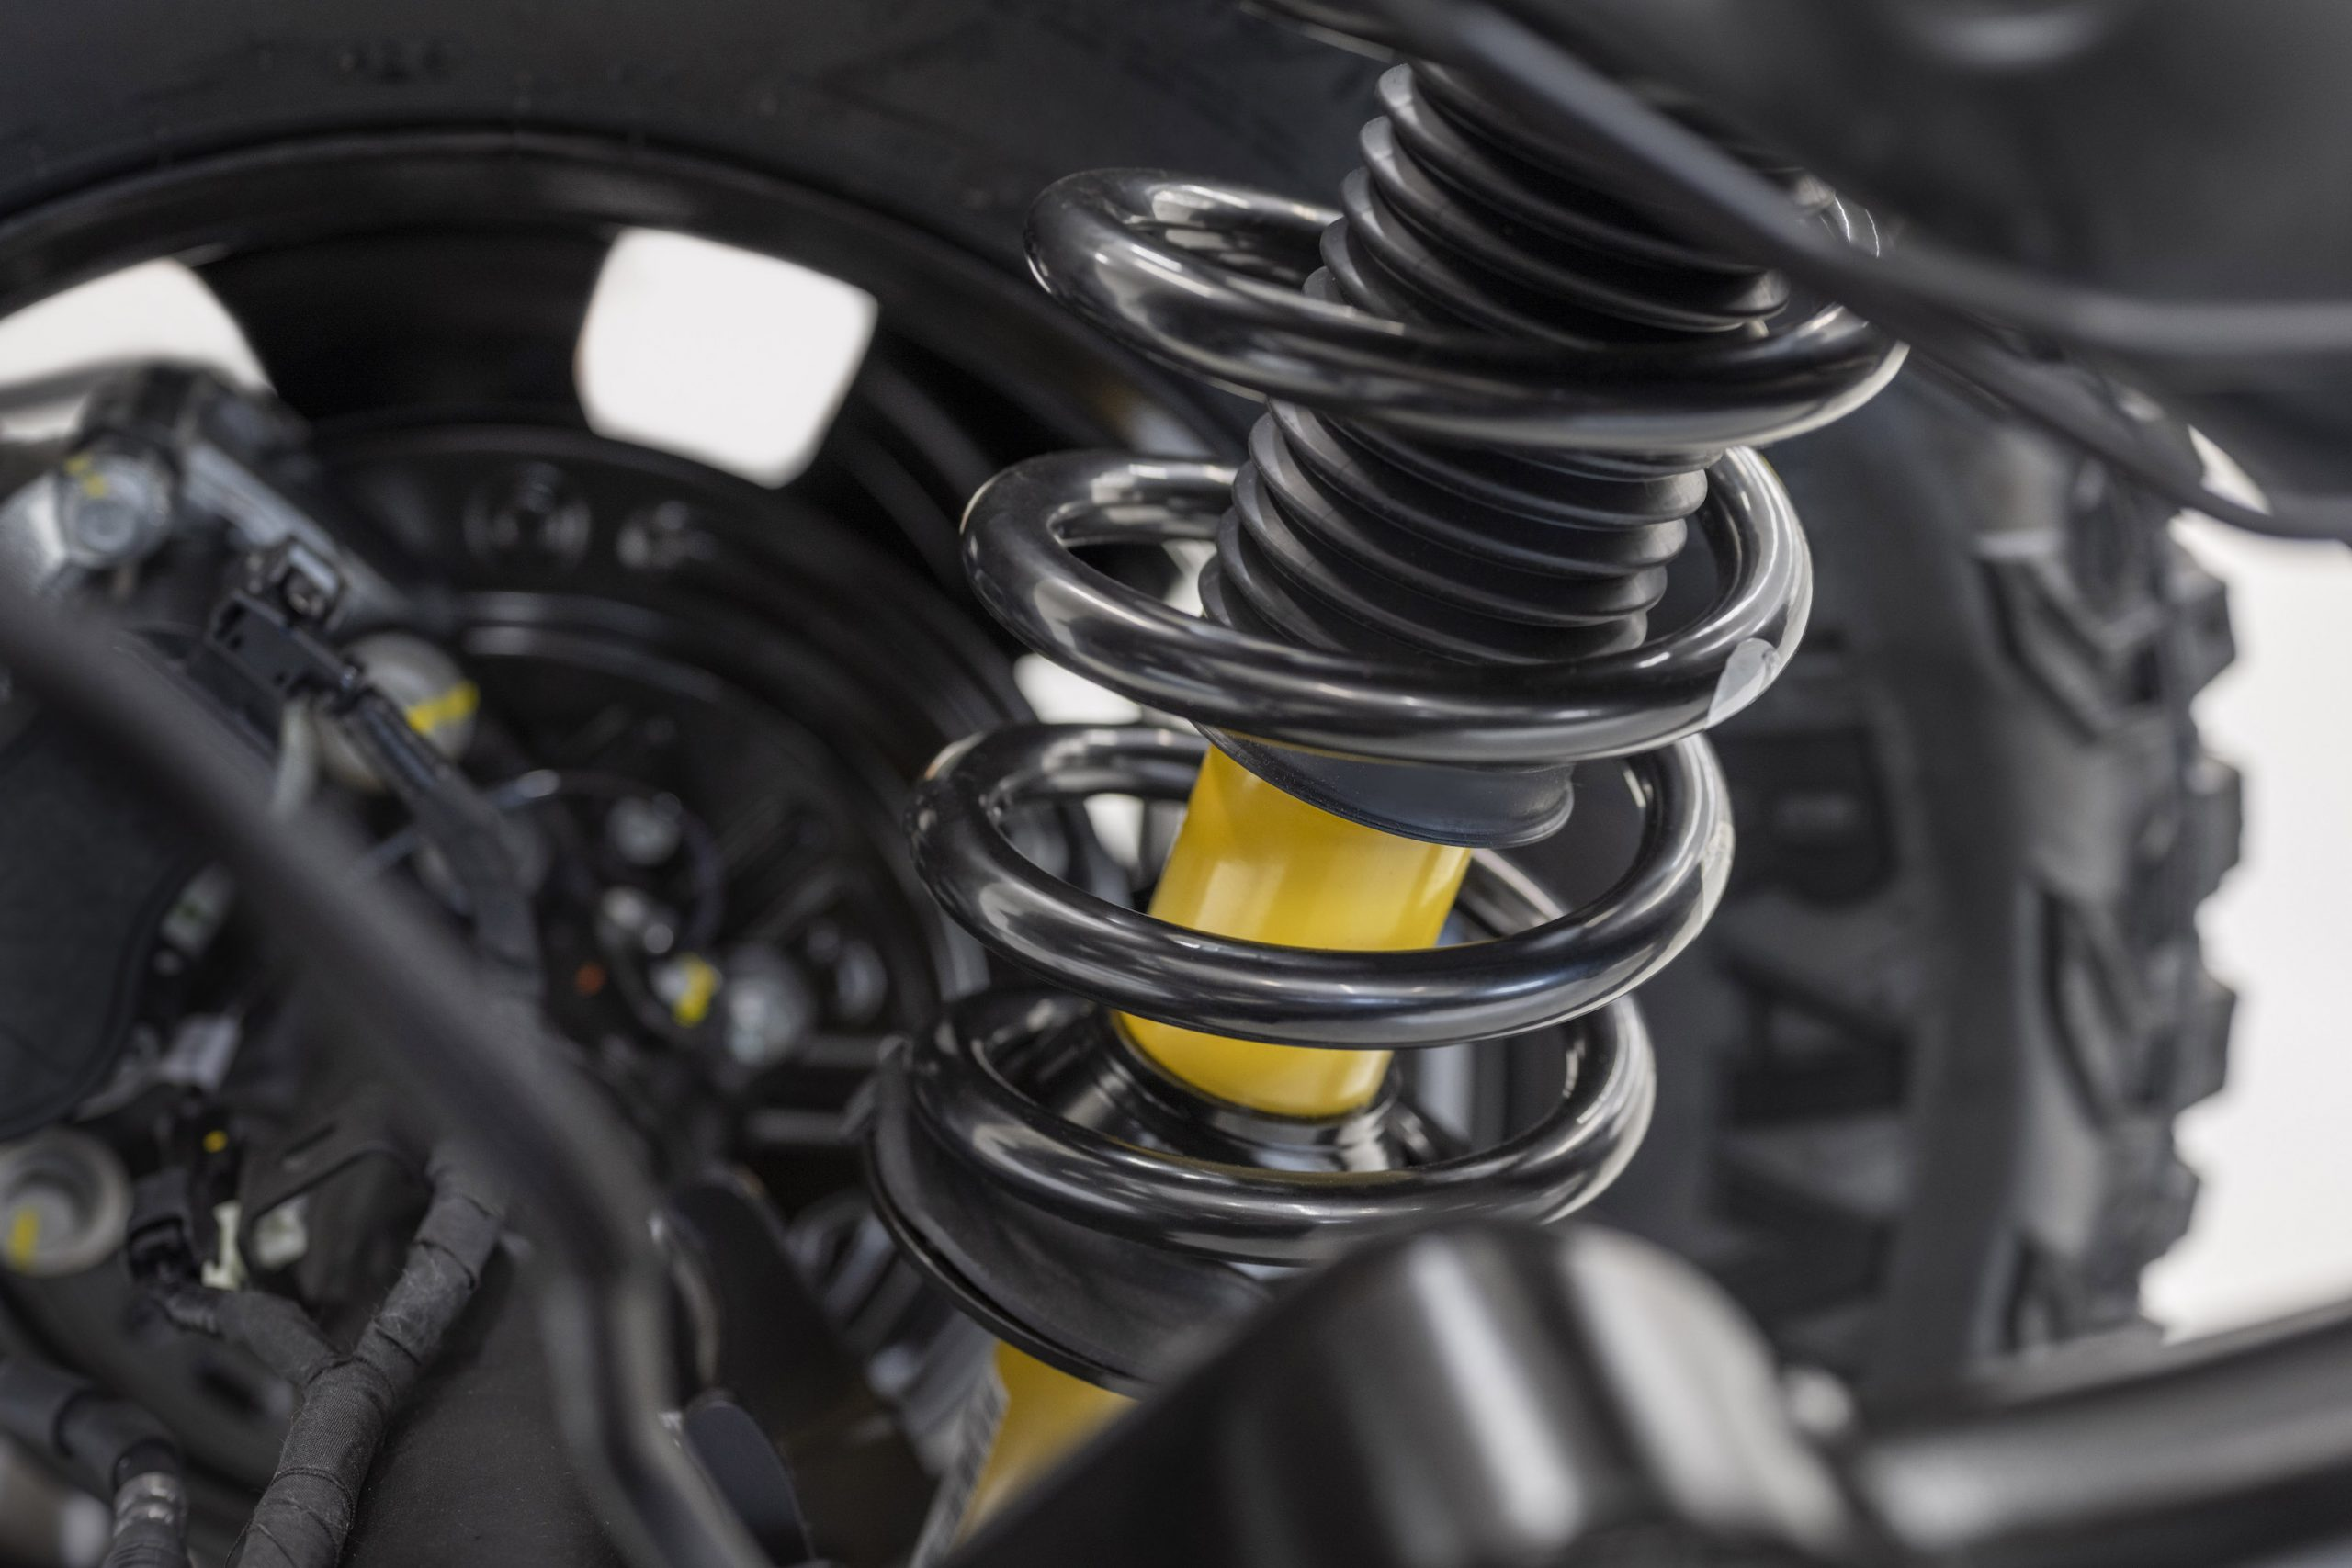 2021 Ford Bronco Shock and Spring